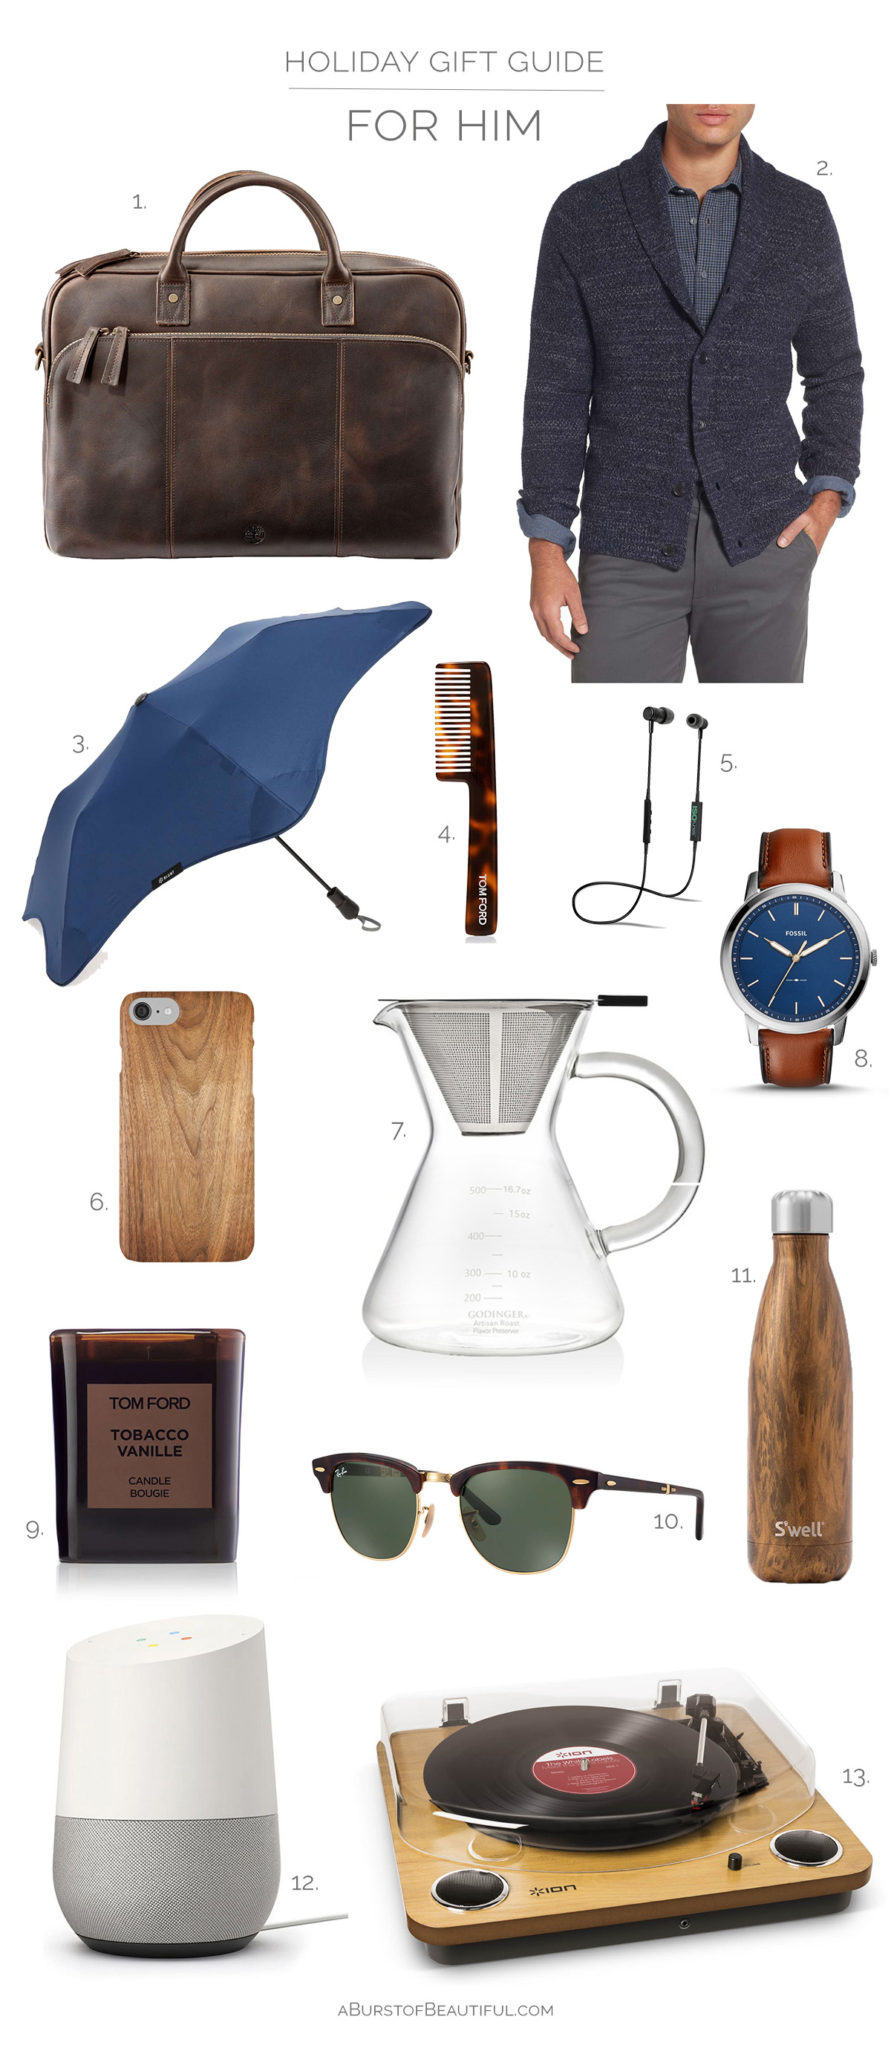 2017 Holiday Gifts | For Him